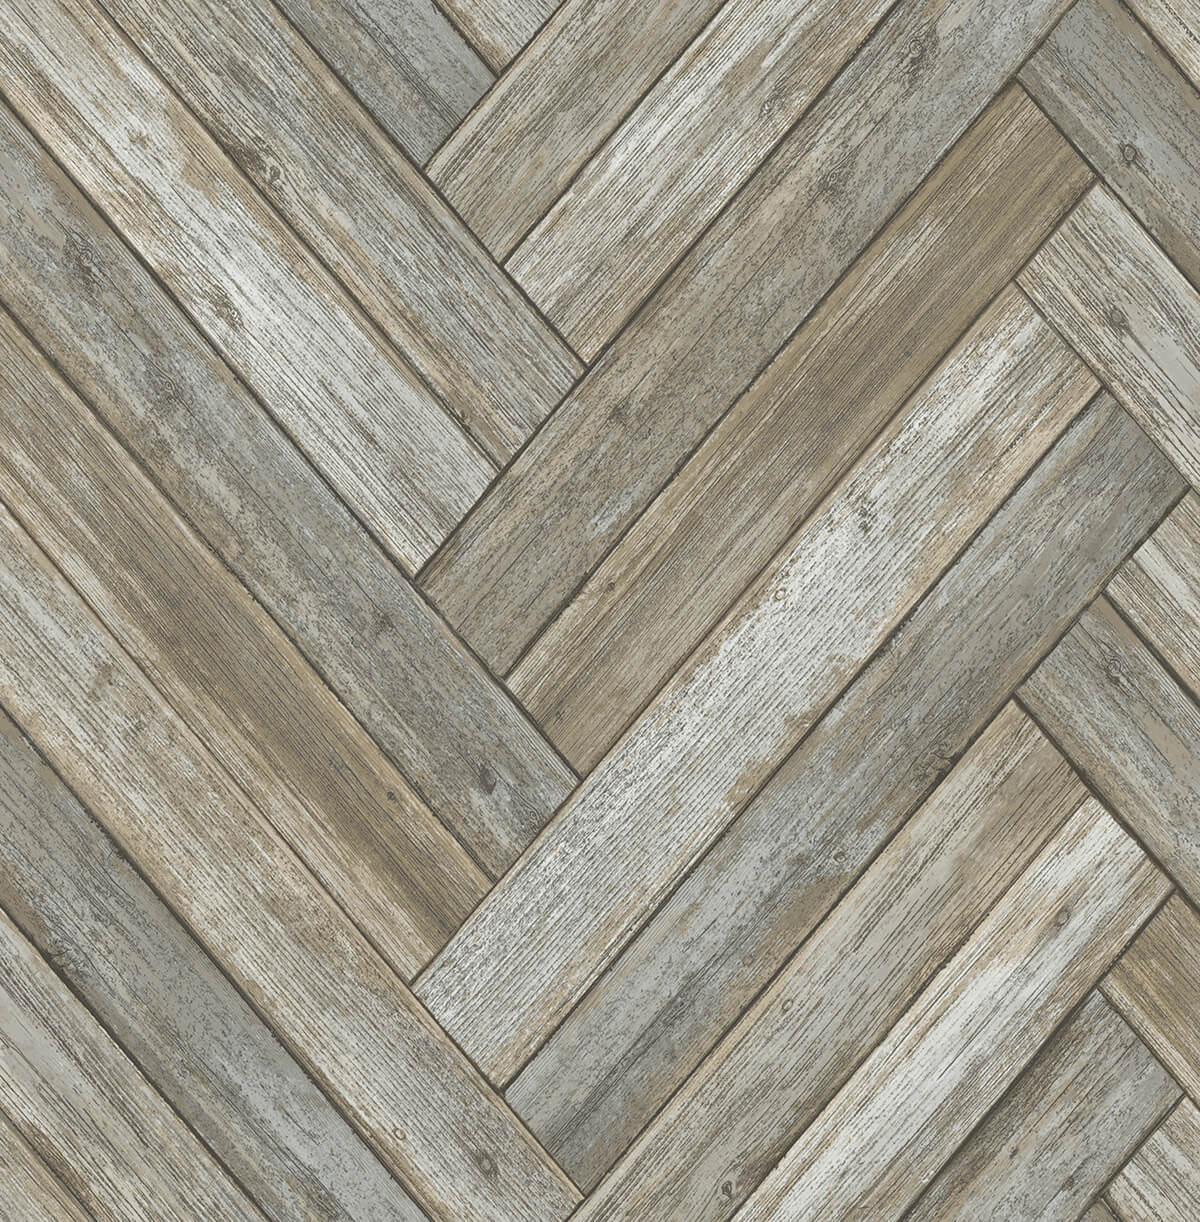 Chevron Wood Peel And Stick Wallpaper In Taupe And Beige By Nextwall Burke Decor